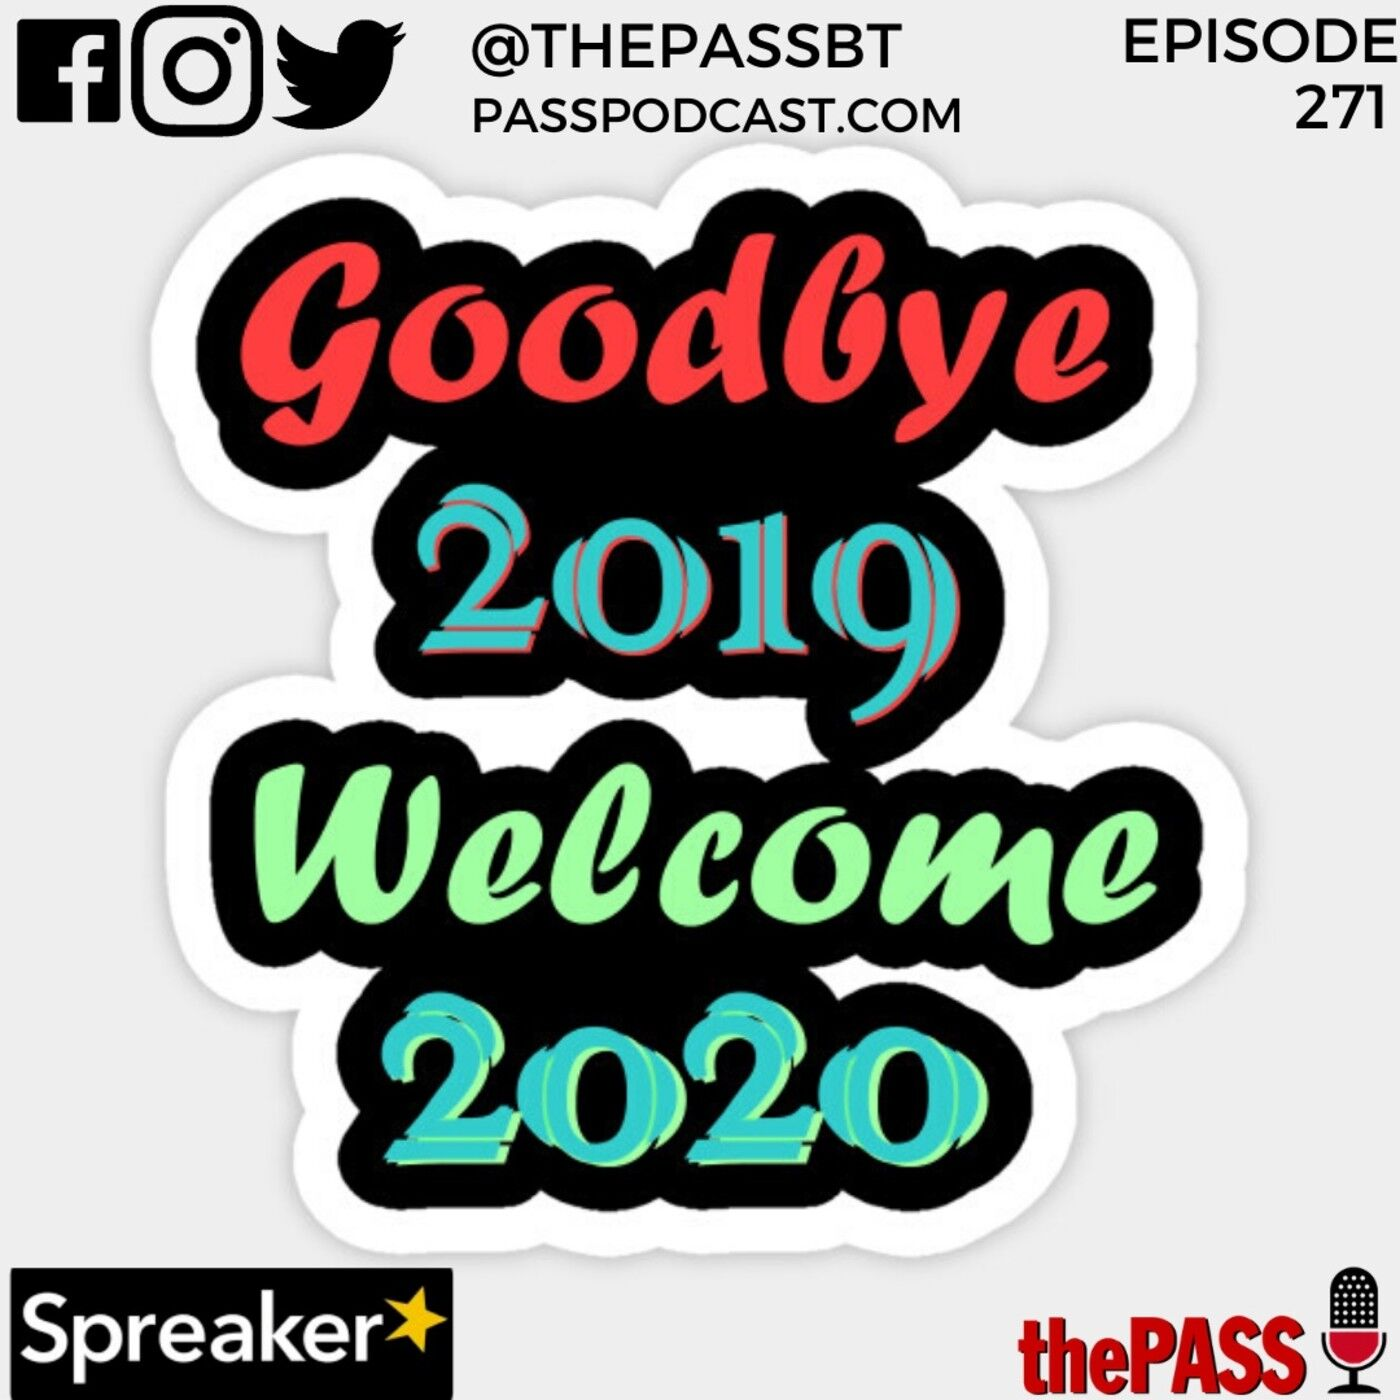 Episode 271-Goodbye 2019